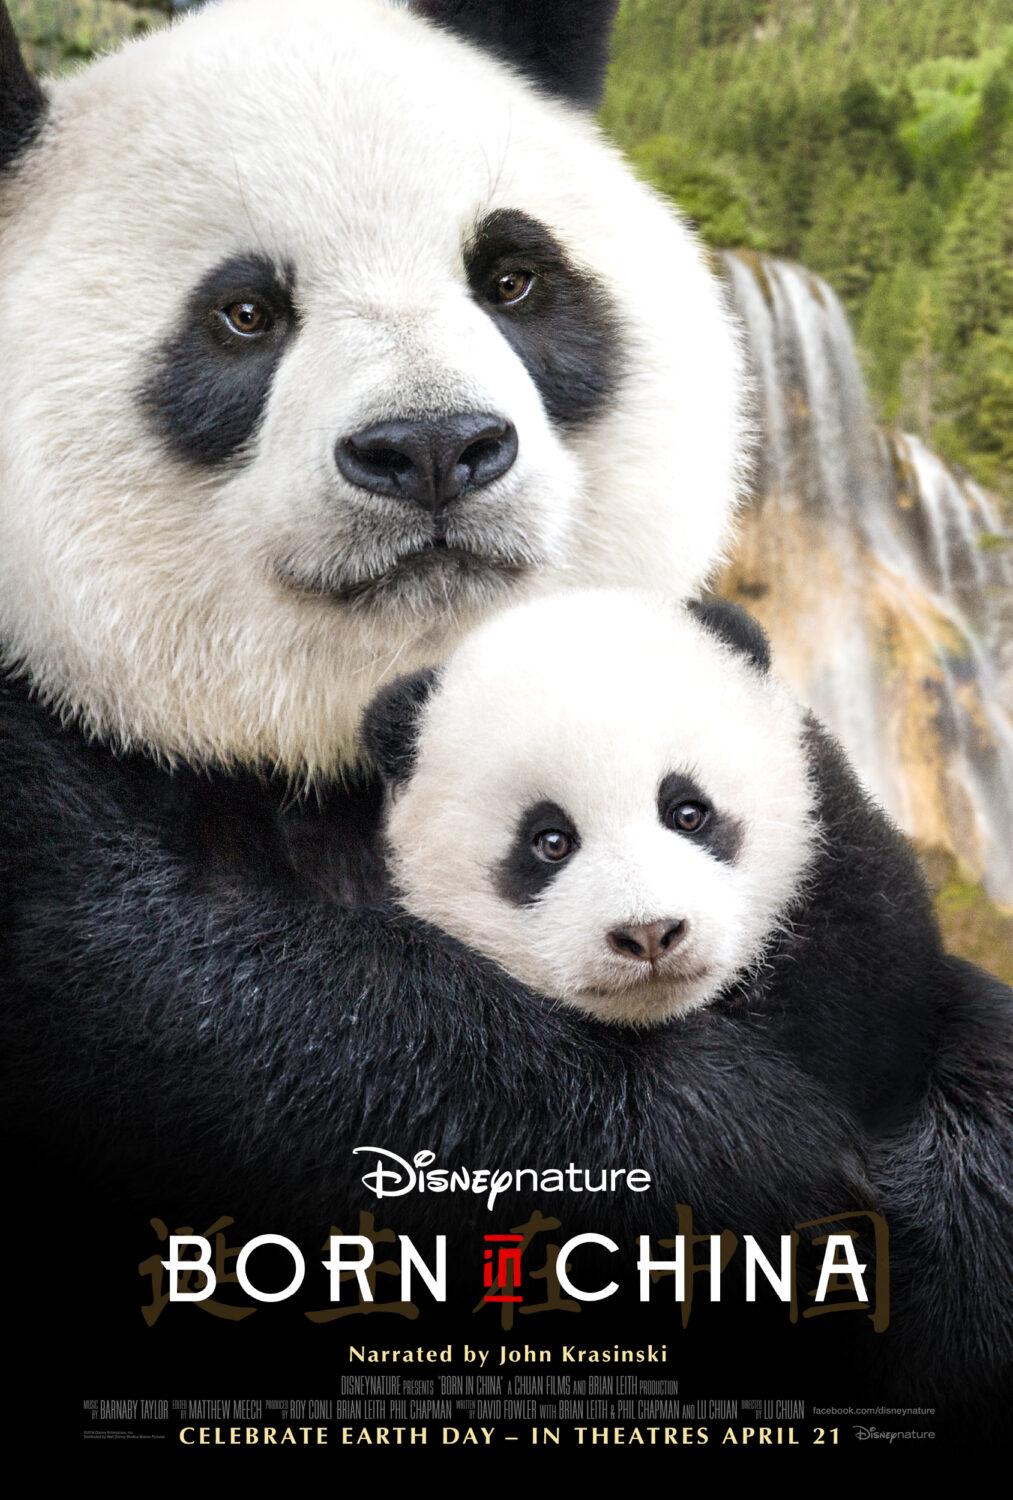 Disneynature Born in China: Ray Conli's Thoughts on Parenting Lessons Within The Film by lifestyle blogger Carly of Lipgloss and Crayons